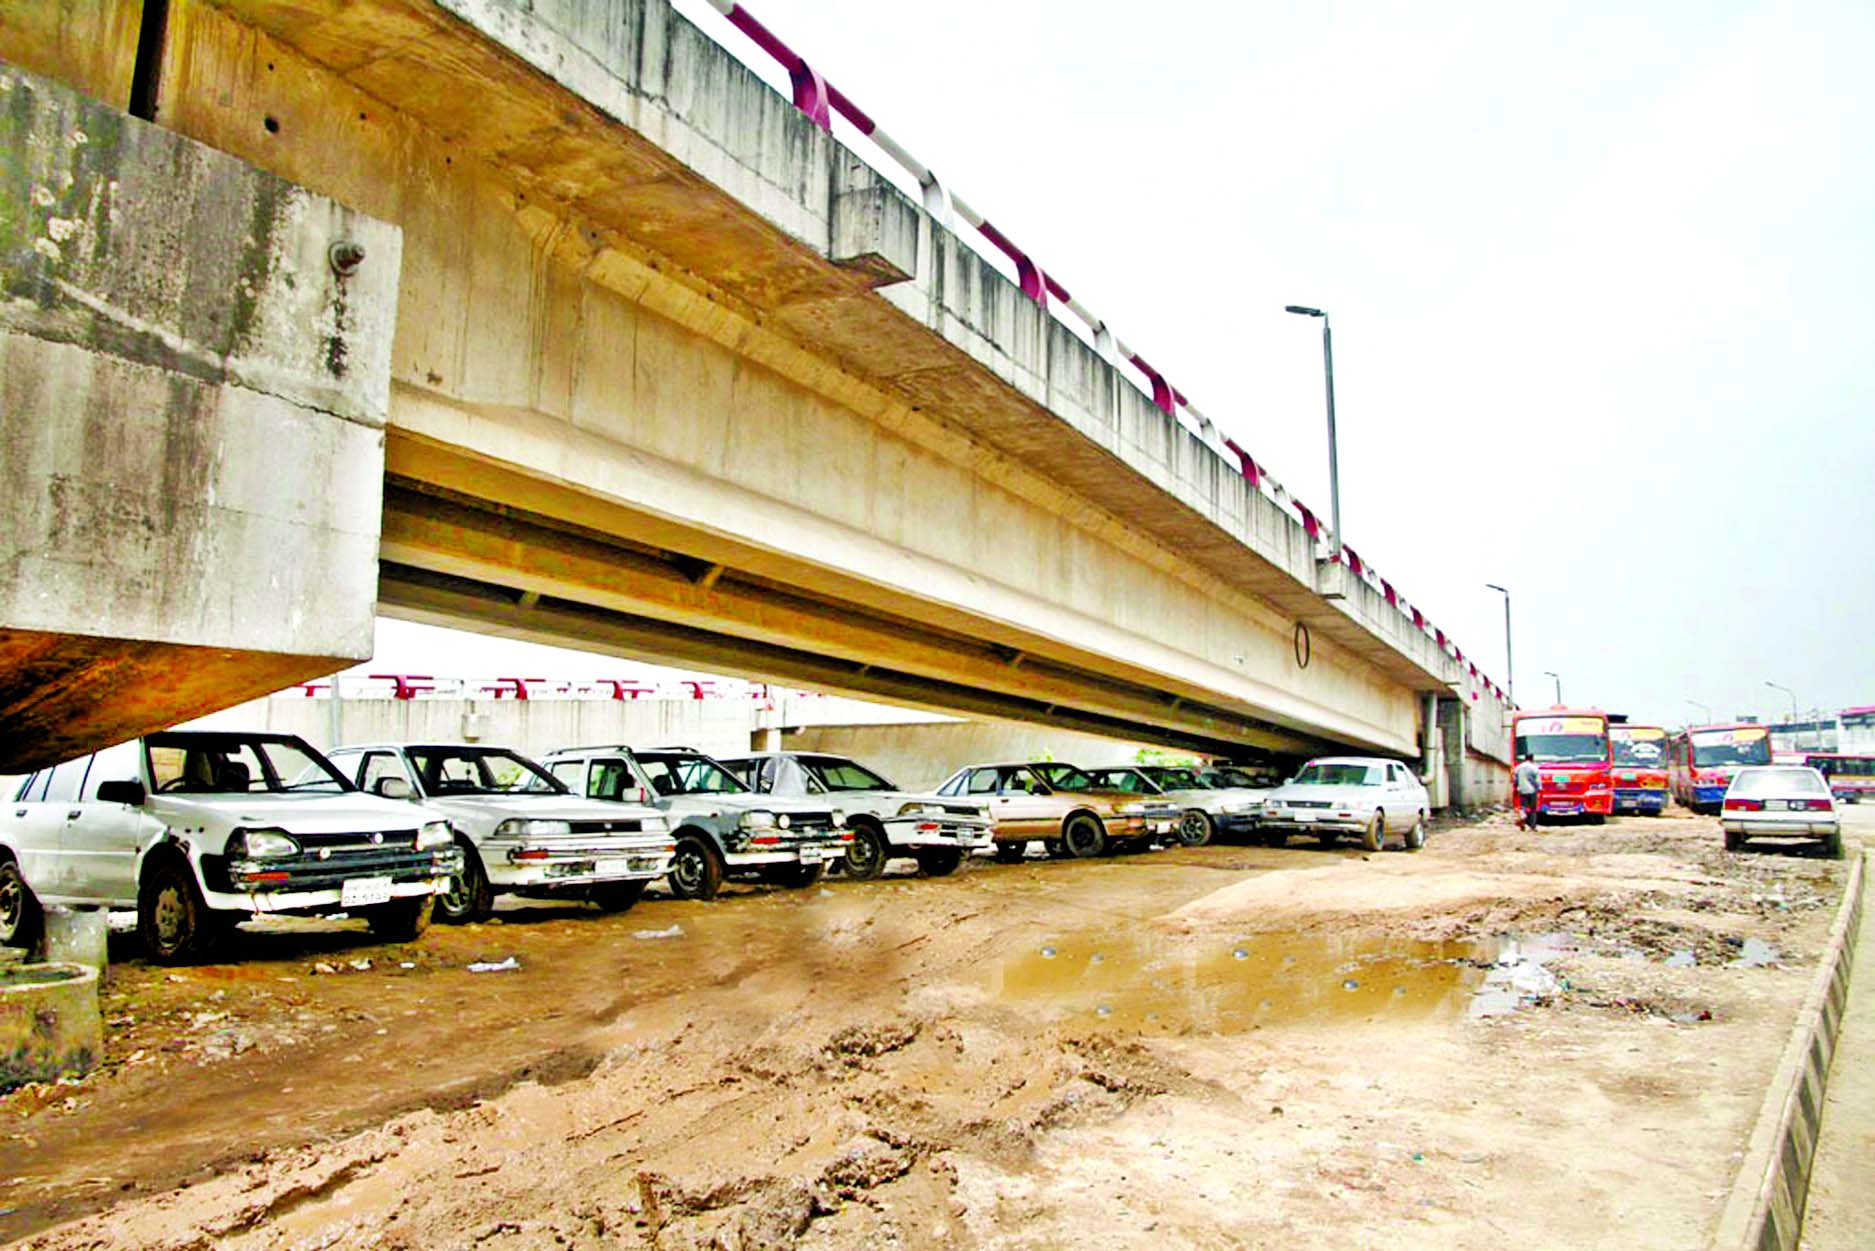 Cars being parked illegally under the Kuril Flyover. This photo was taken on Wednesday.